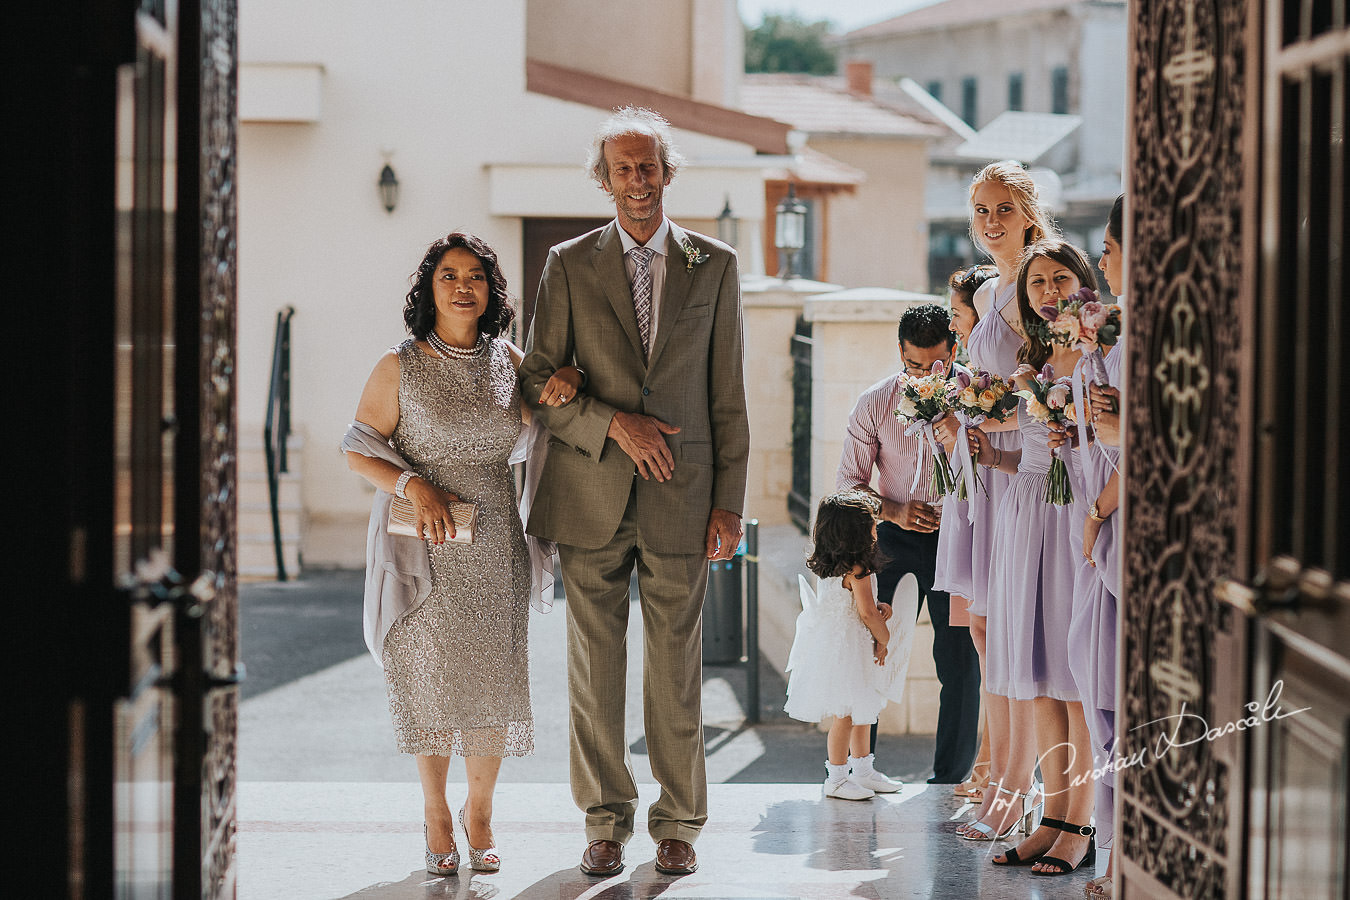 Moments captured during a beautiful wedding at St. Raphael Resort in Limassol, Cyprus.